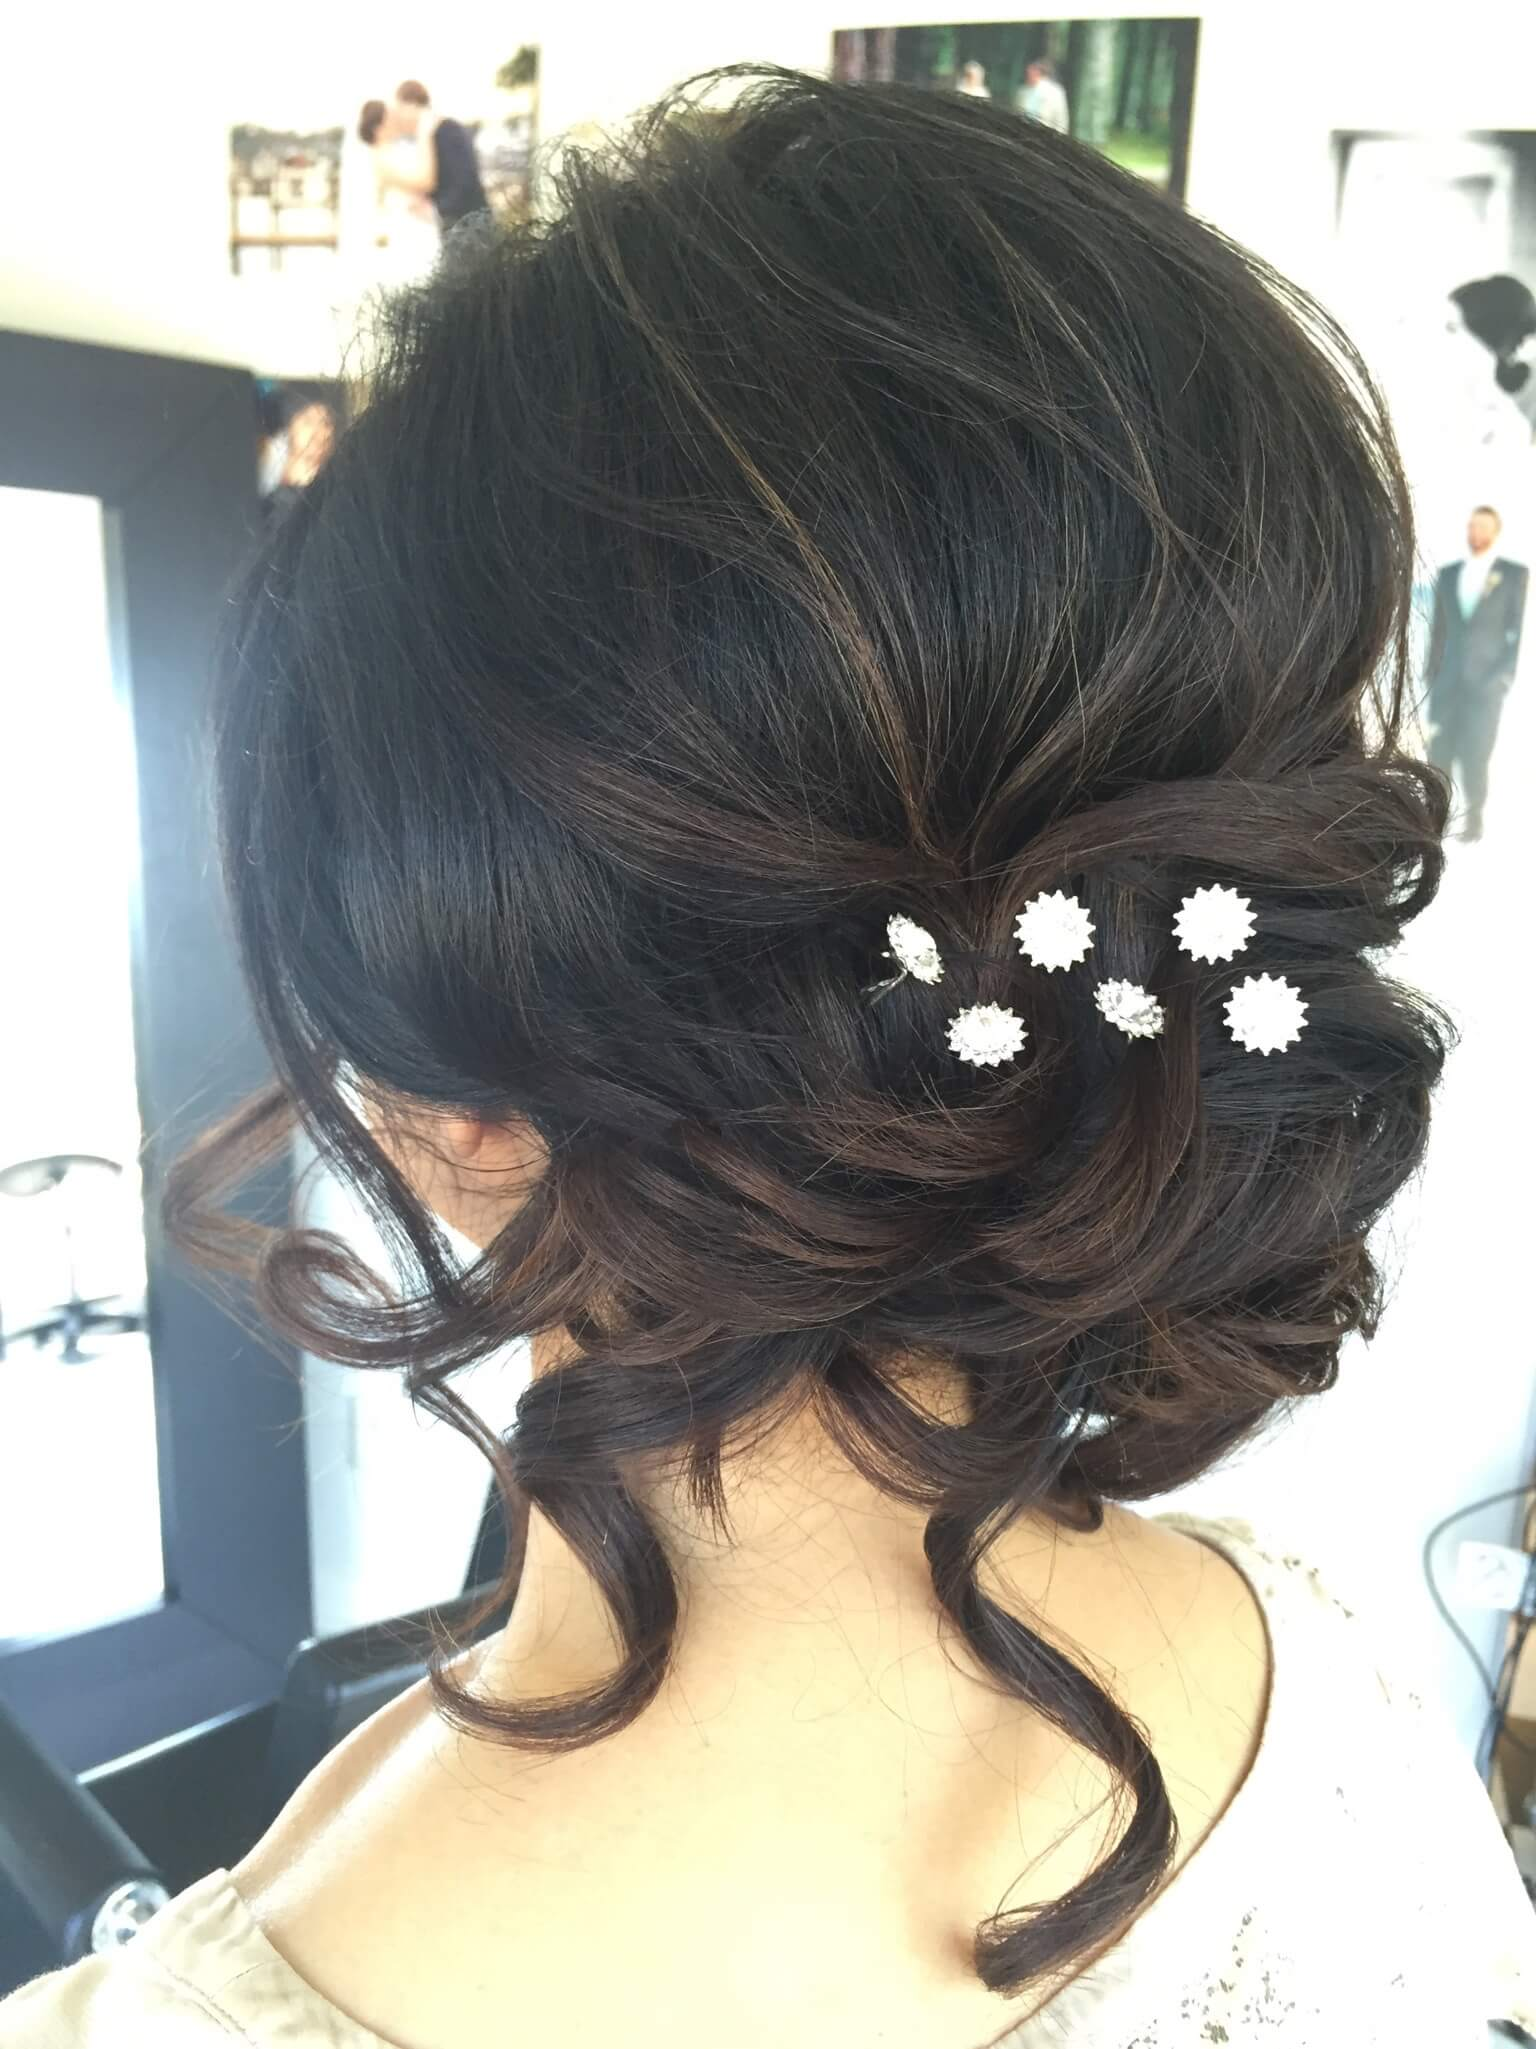 hair-salon-jacksonville-wedding-hairstyles-91